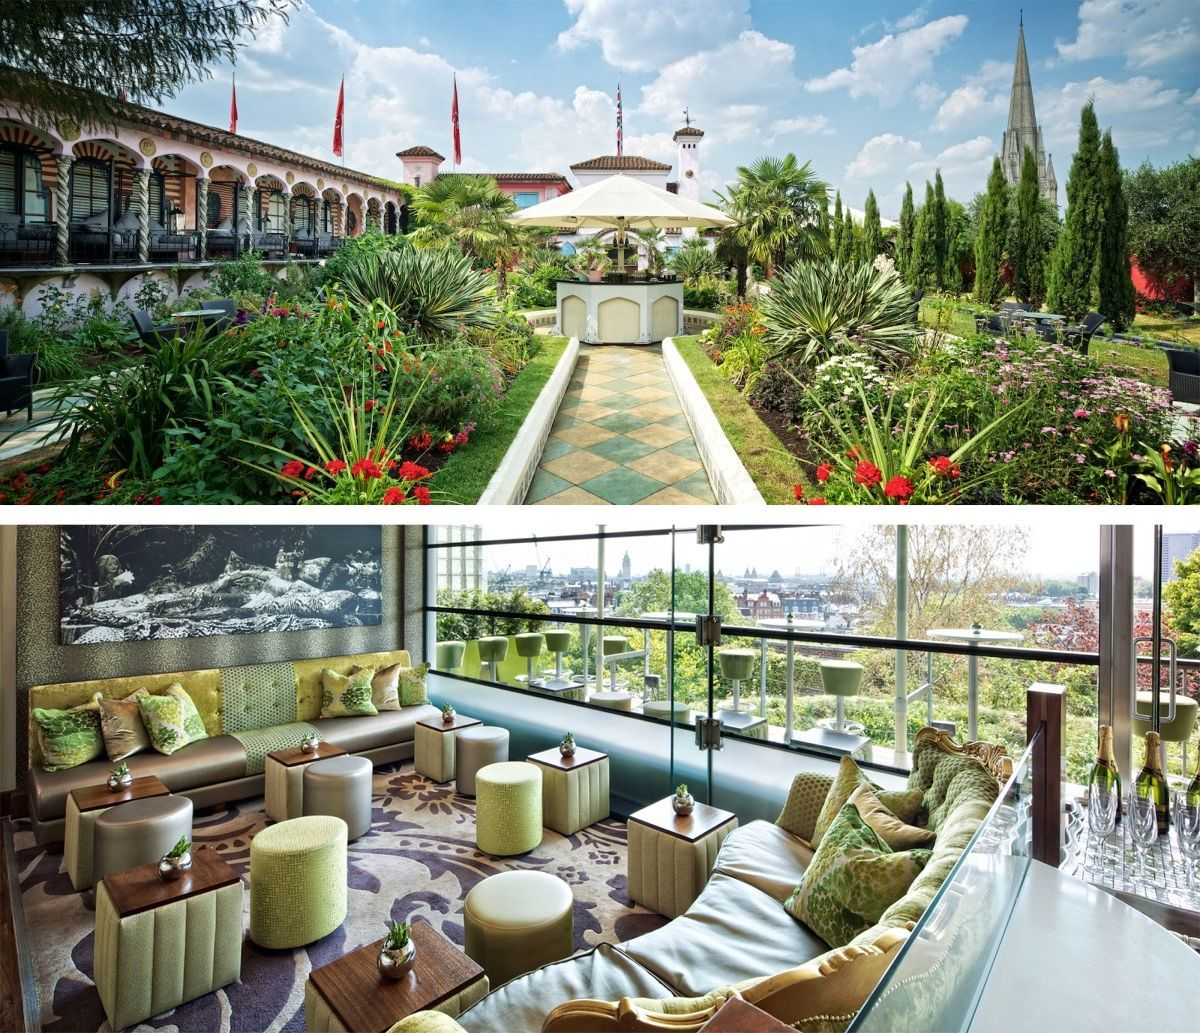 Kensington Roof Gardens The Roof Gardens Derry Toms With